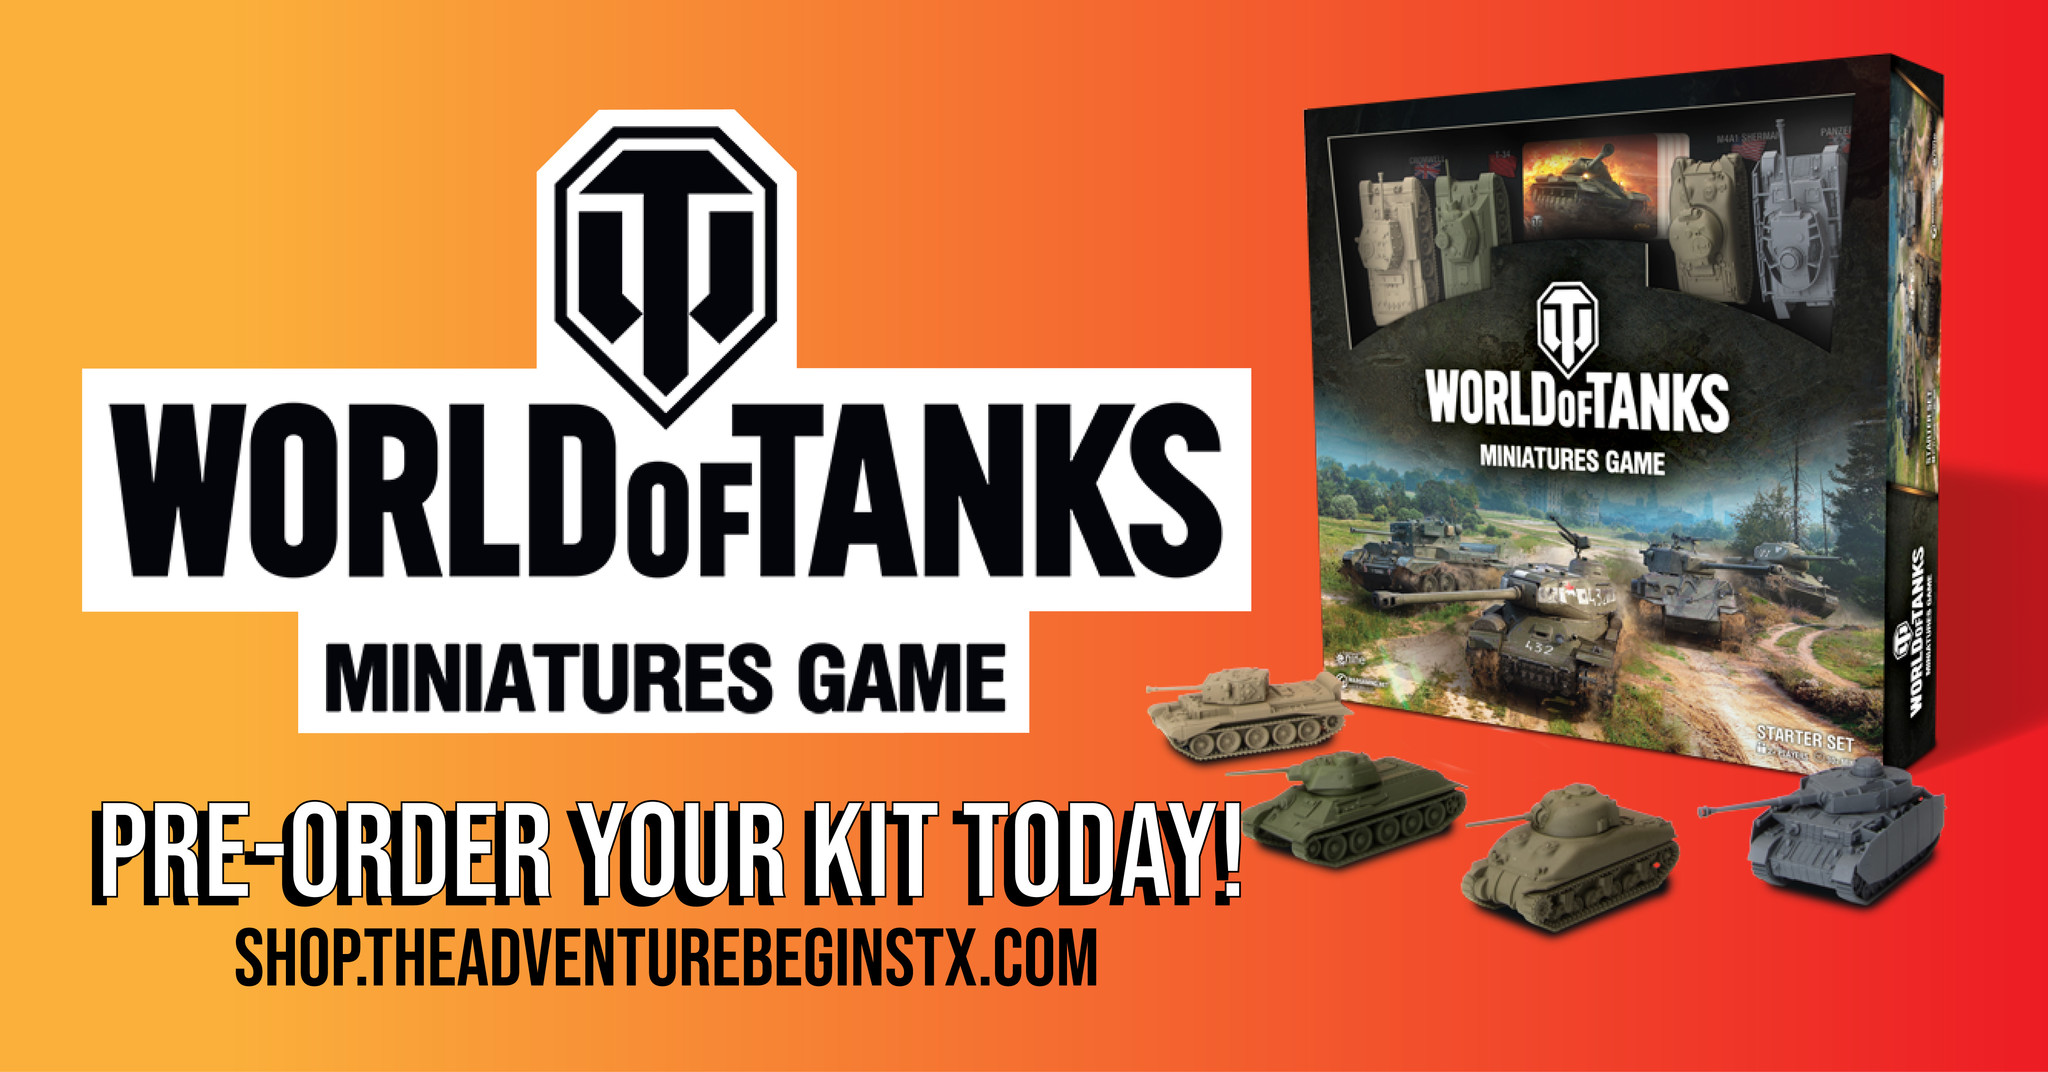 Power to you with World of Tanks!